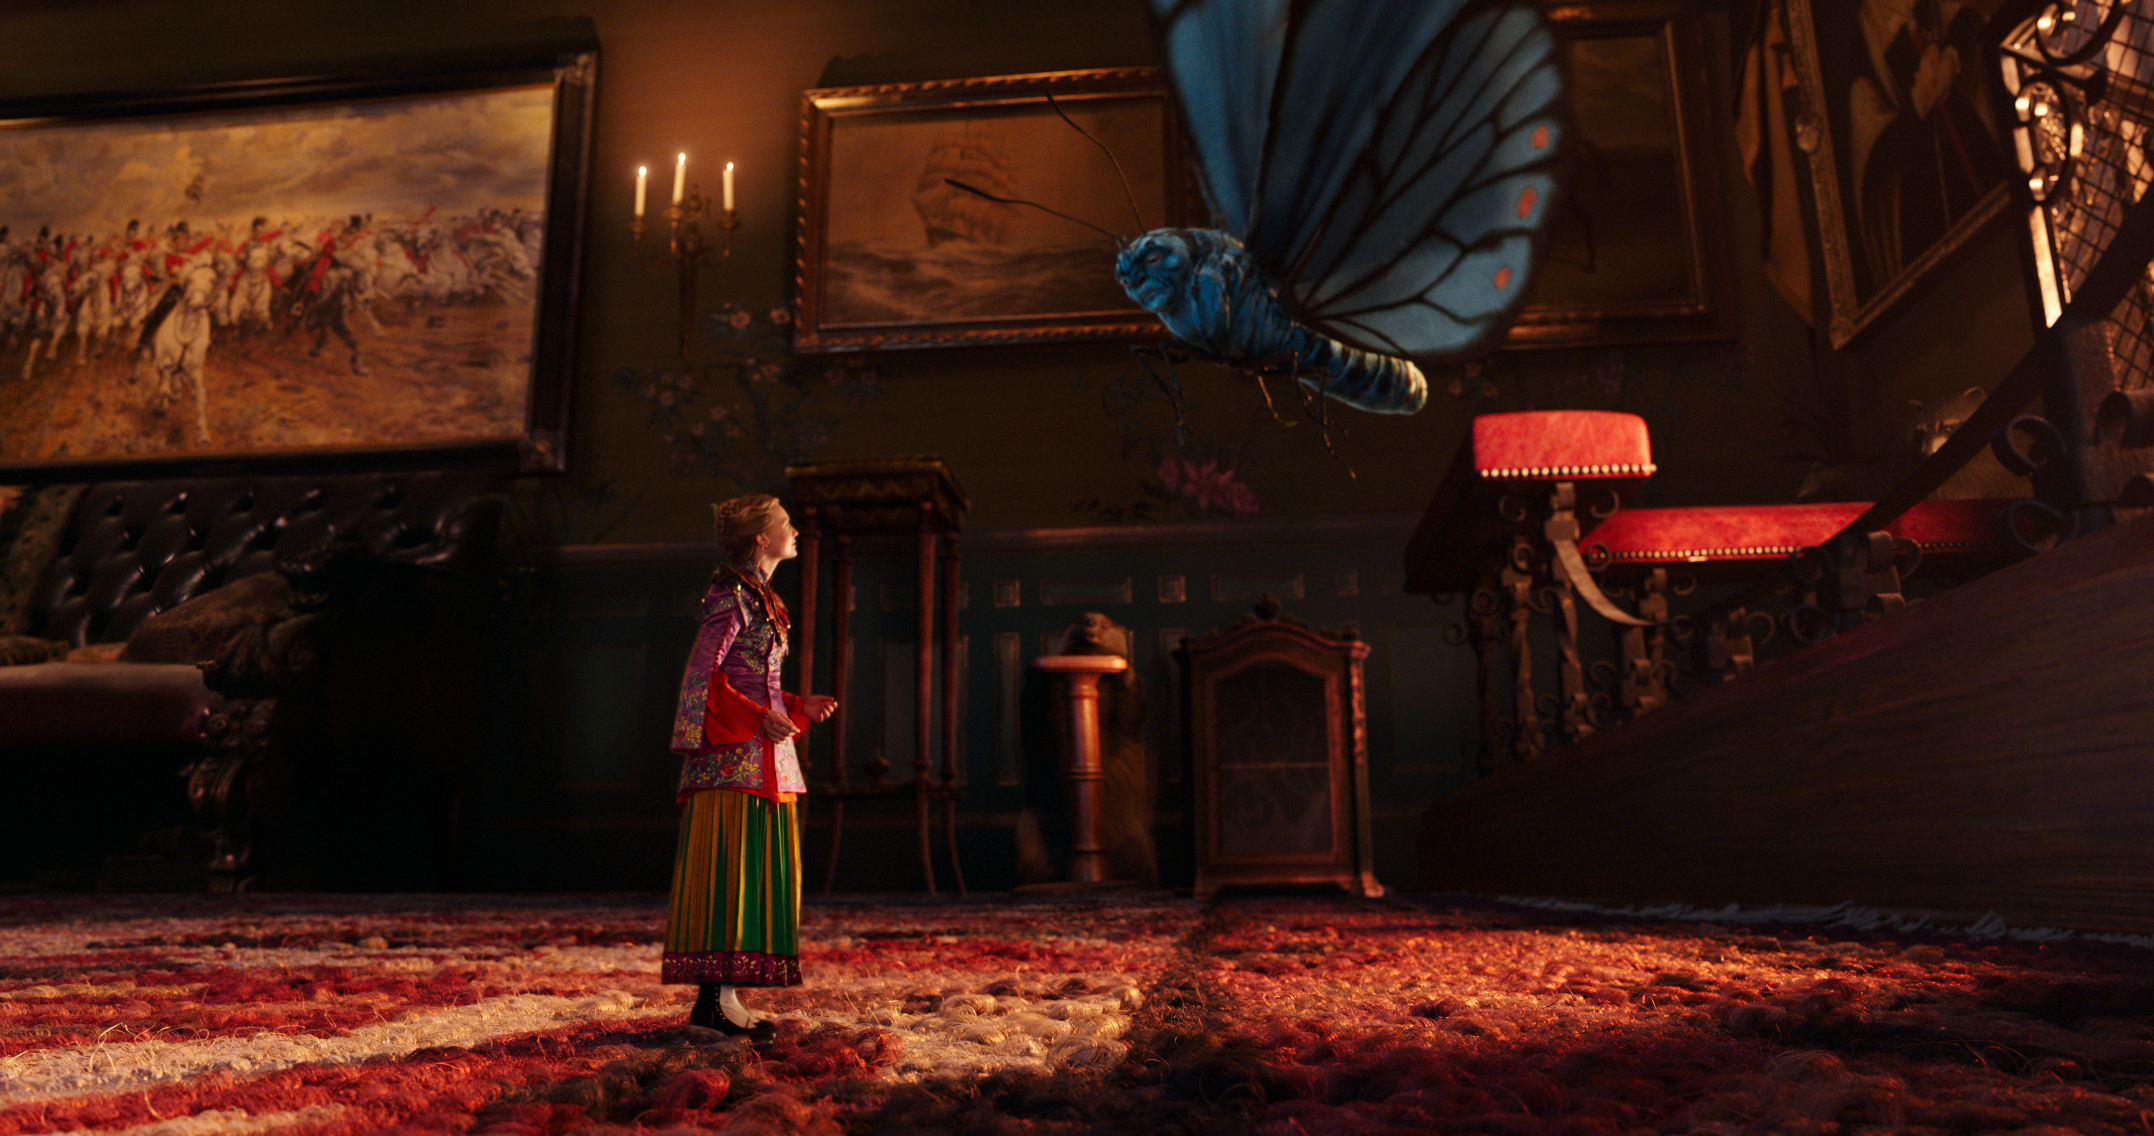 disney alice de l'autre côté du miroir through looking glass